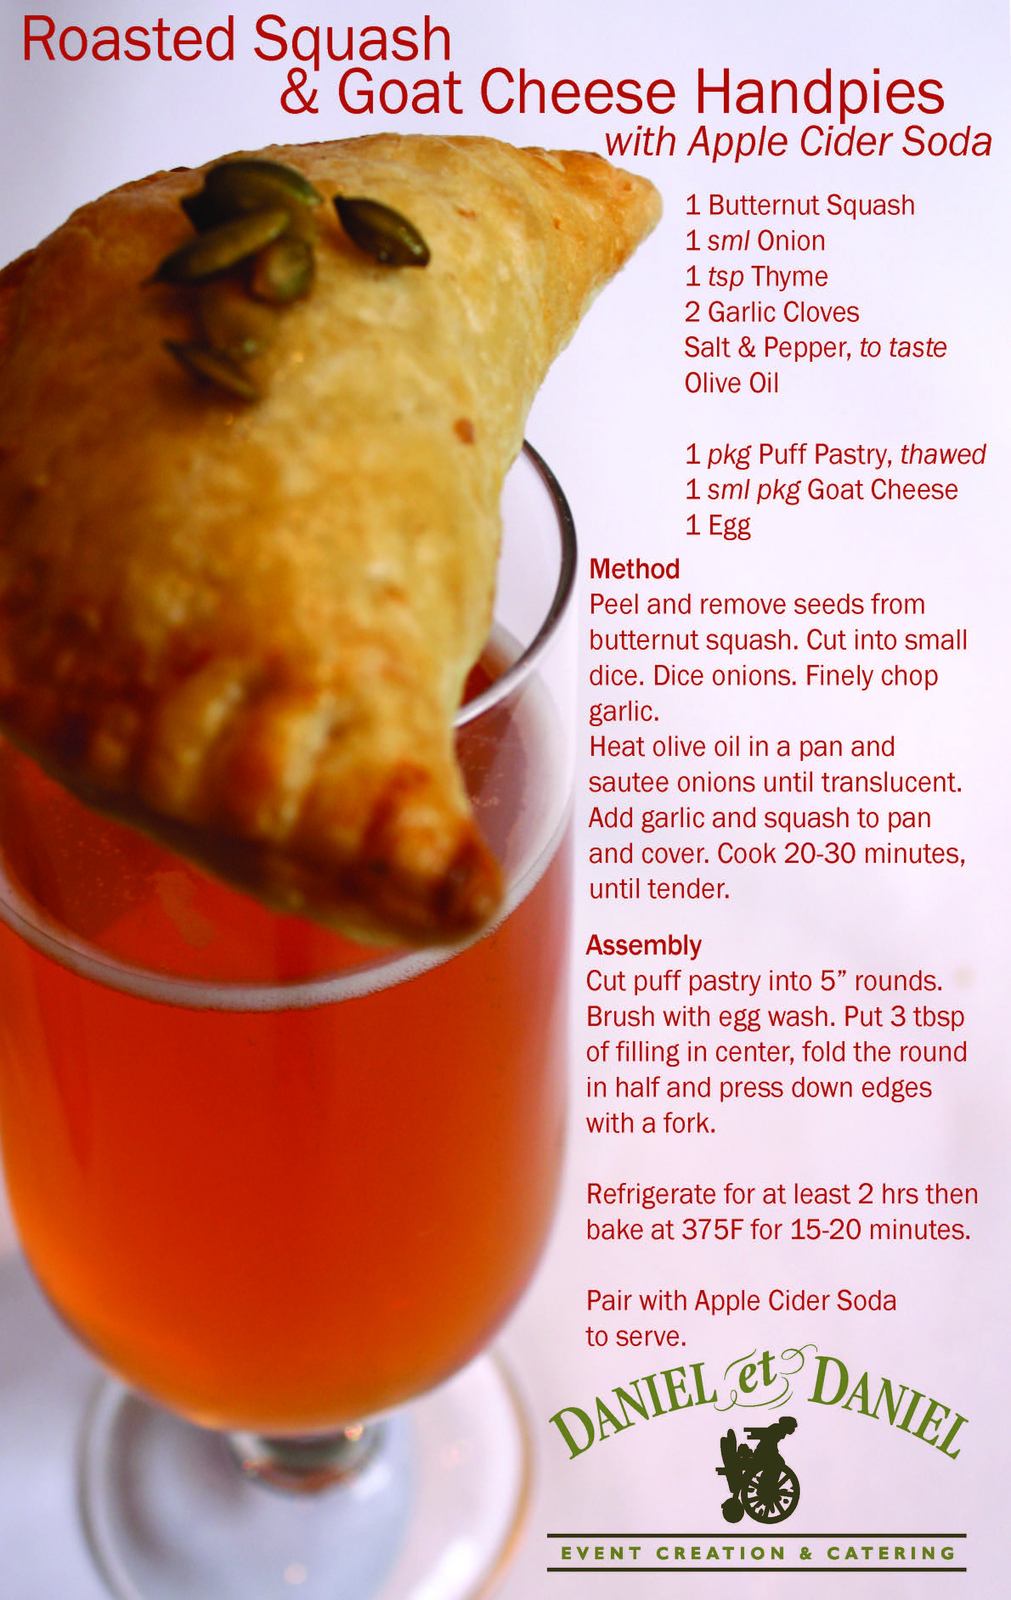 fall-duo-roasted-squash-and-goat-cheese-handpies-with-apple-cider-soda-01